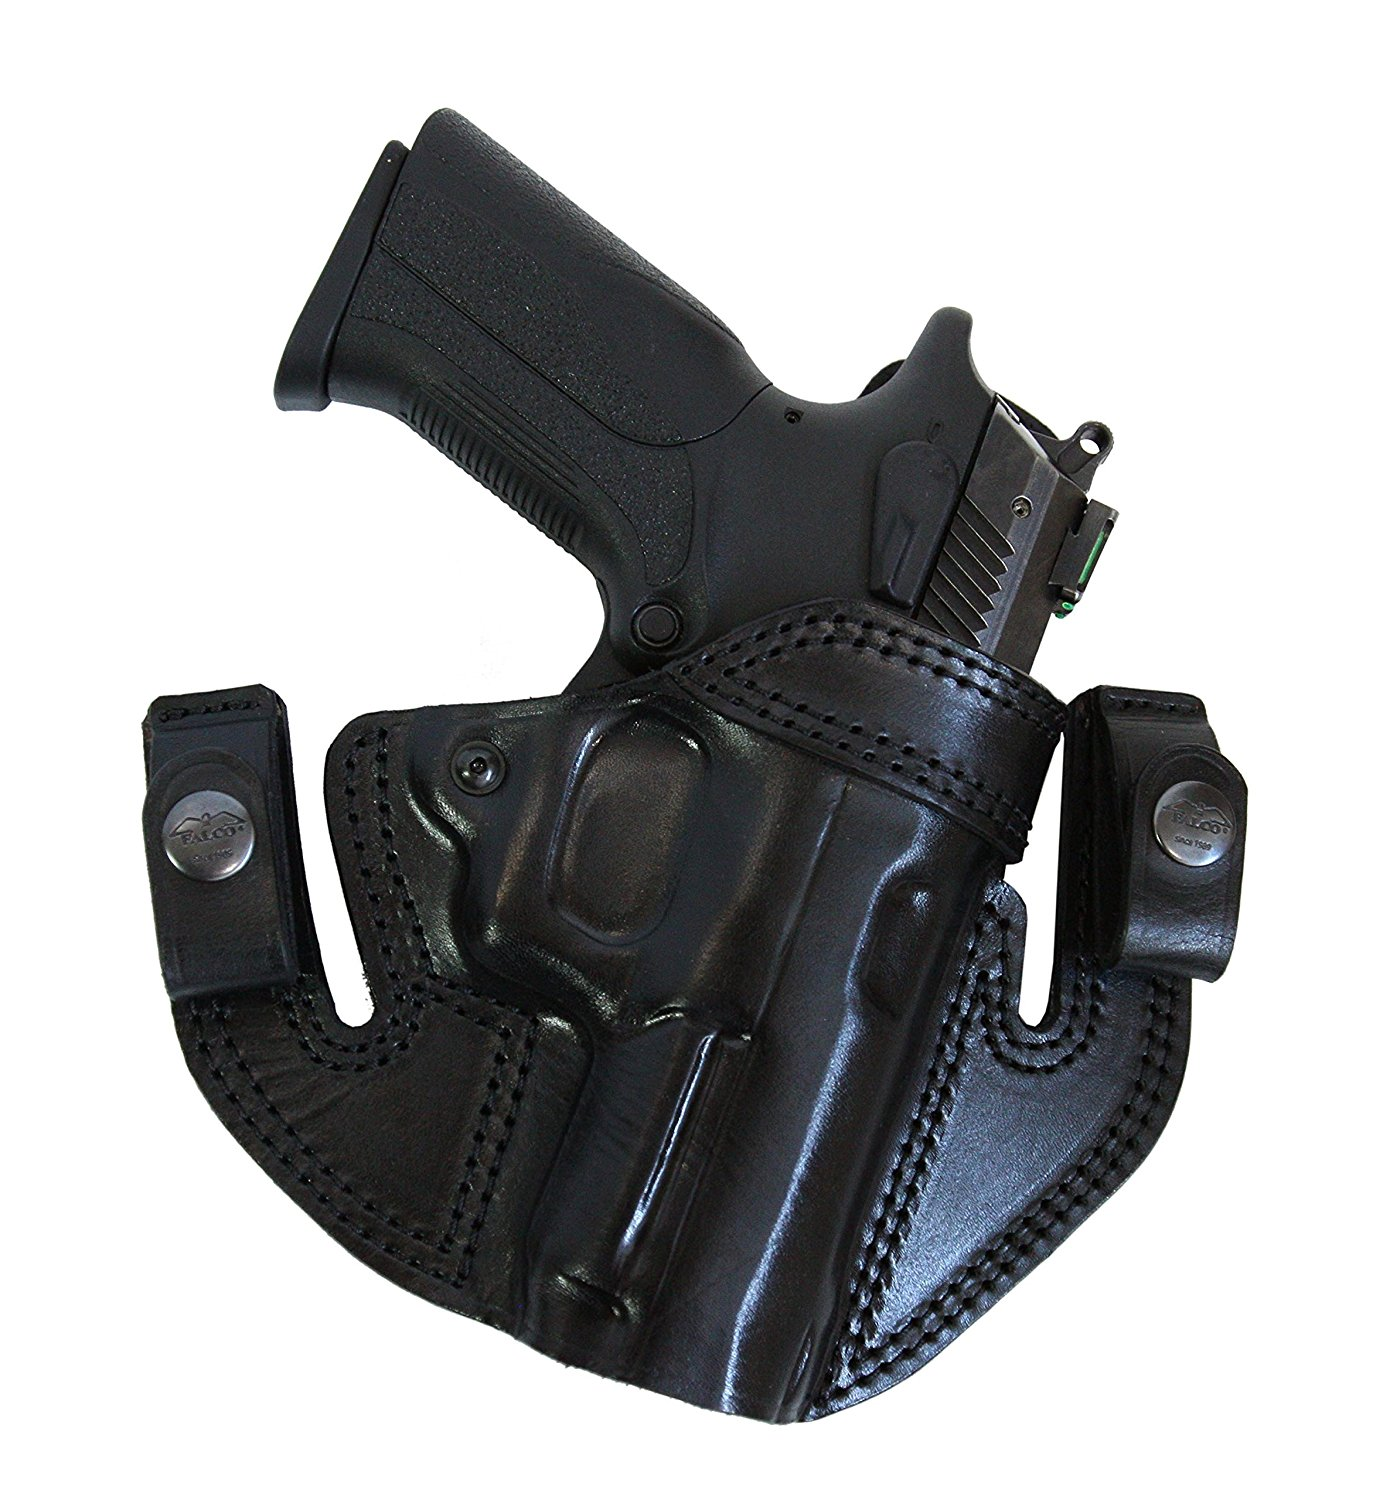 Buy Ronin OWB Holster for Walther PPS M2, Black, Right Hand